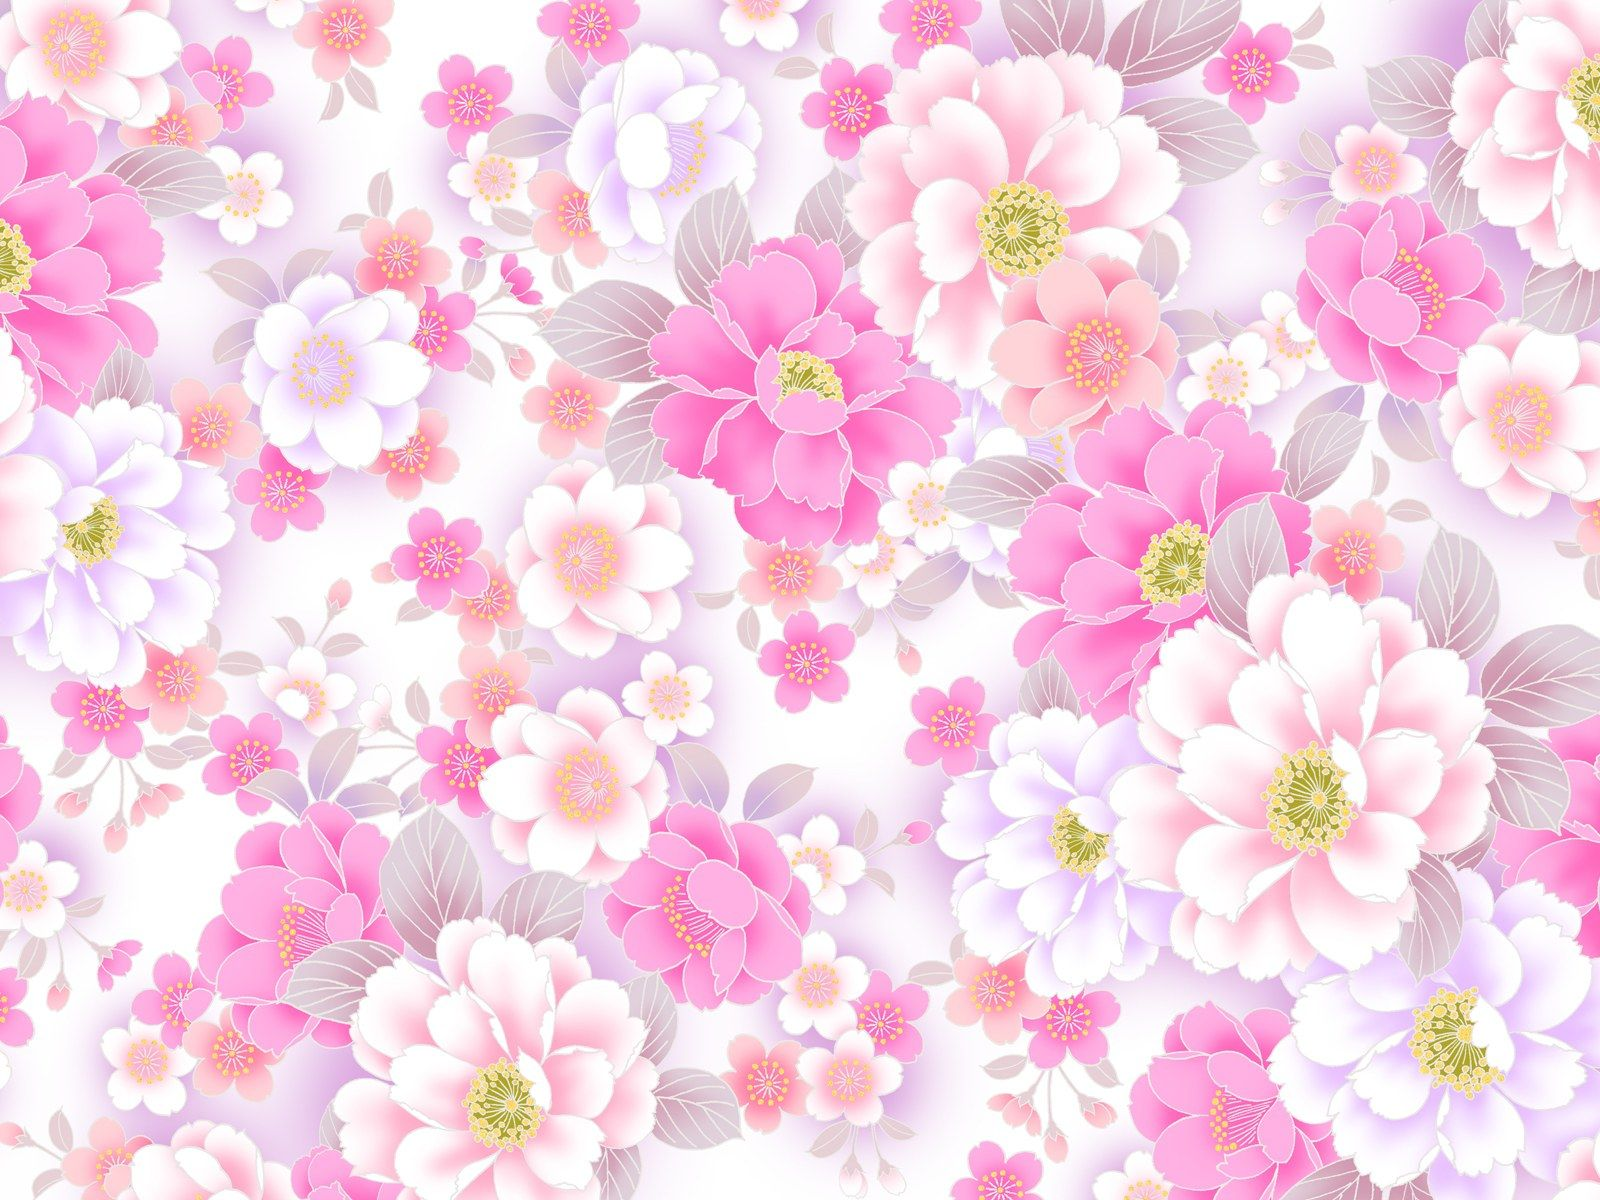 Download Pink Flower Designs Wallpapers High Resolution Is